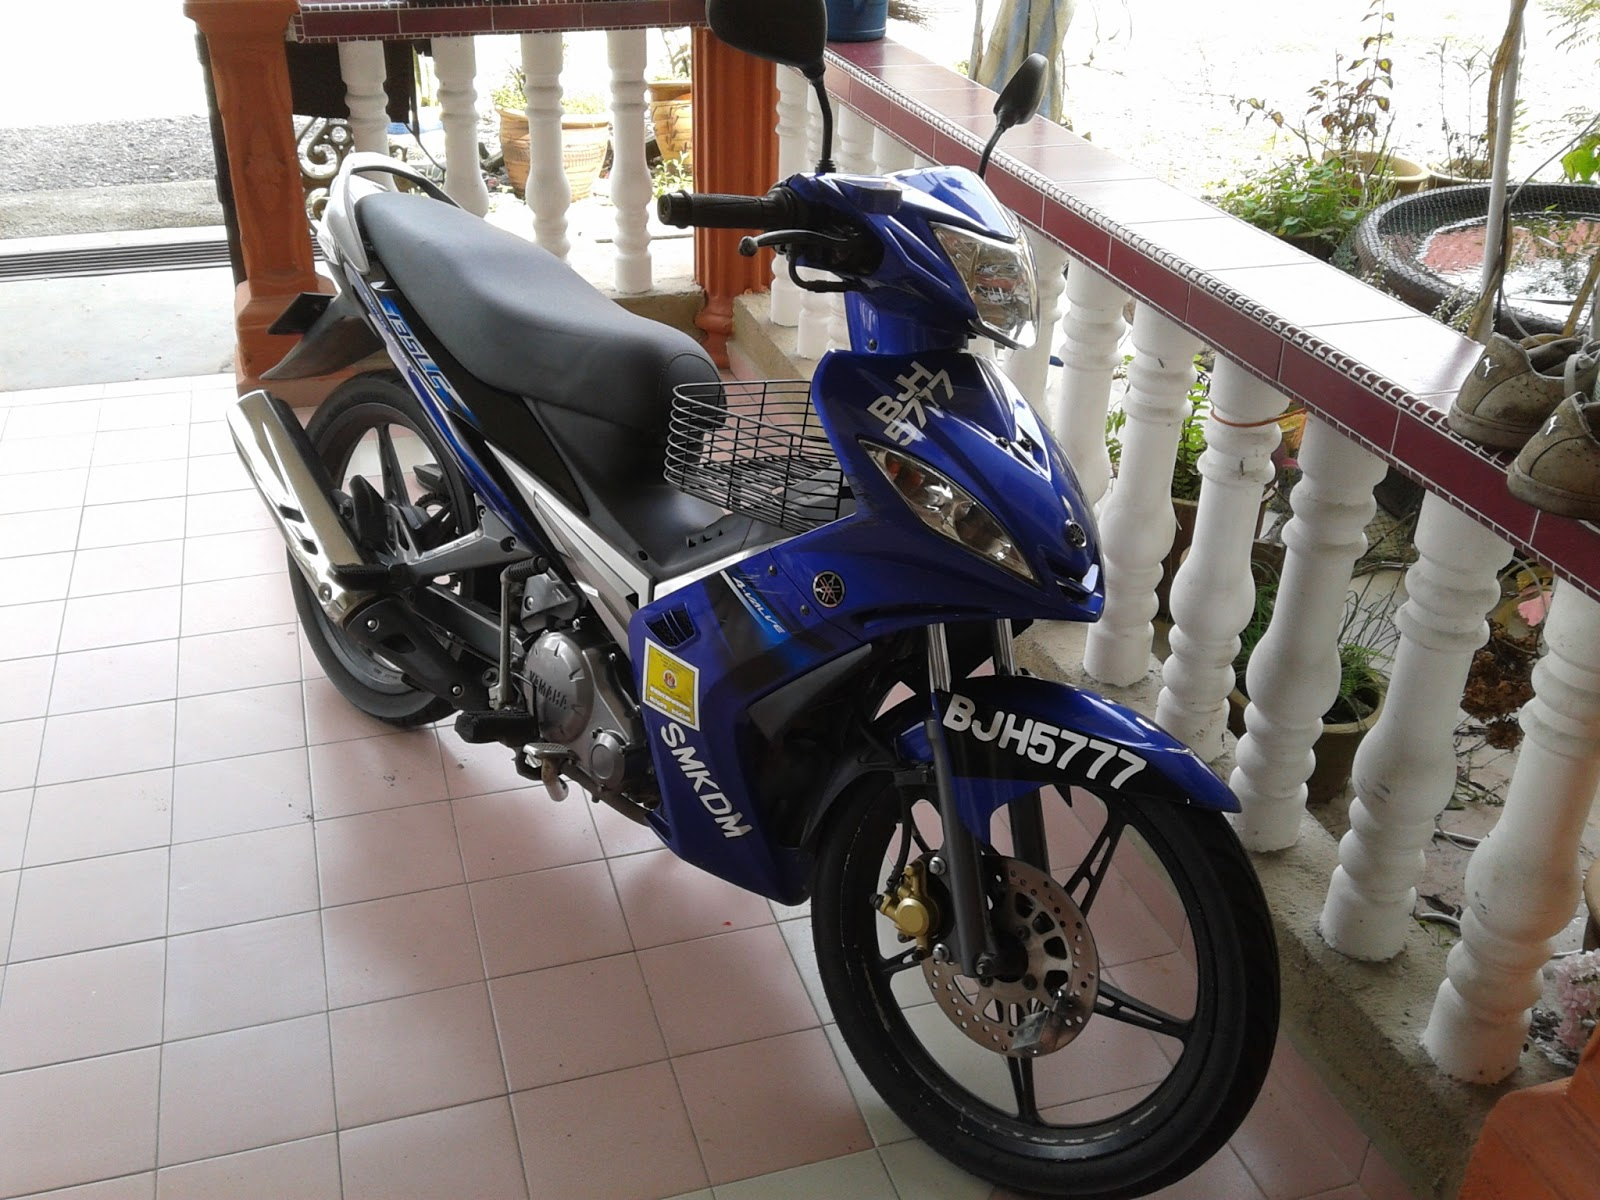 Top speed sebenar Yamaha 135LC (first batch with 4speed